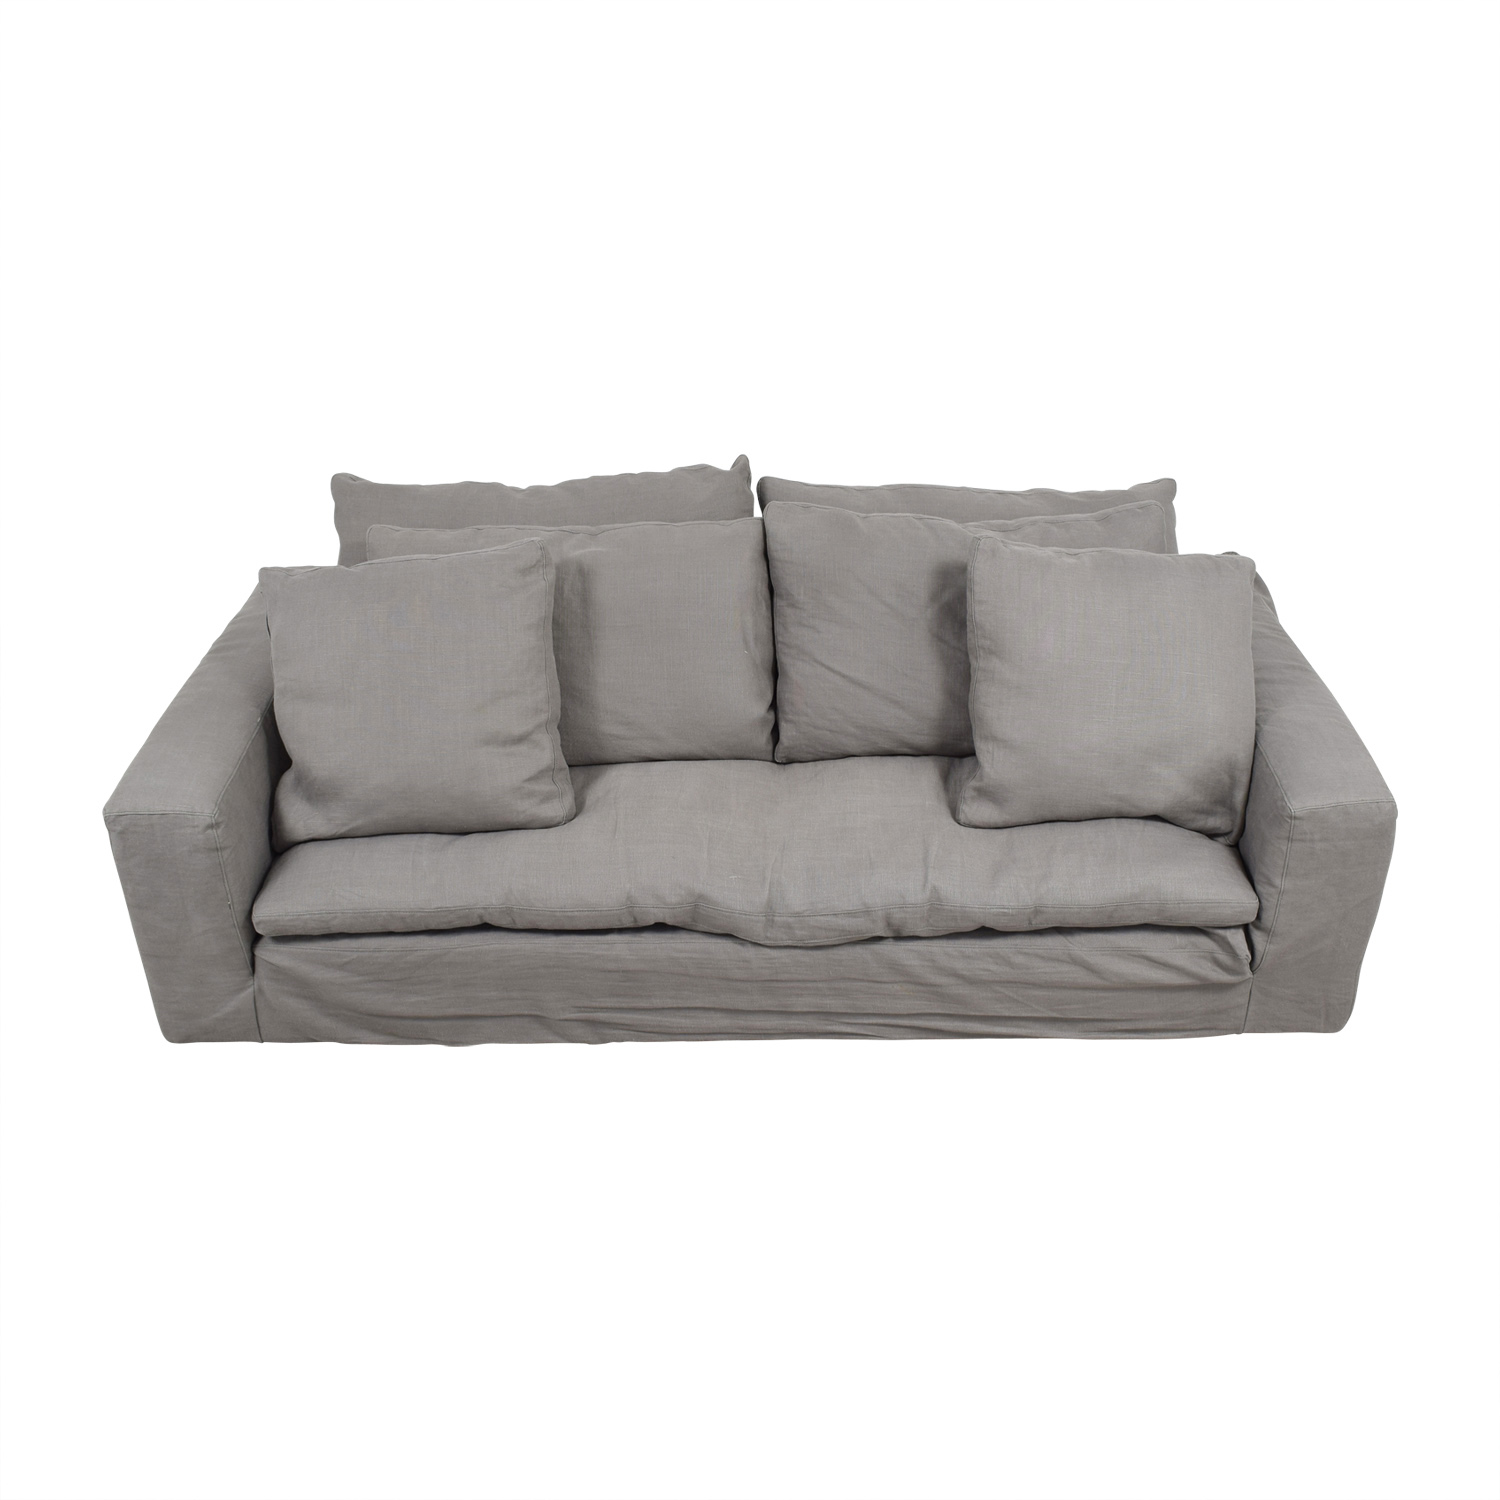 Restoration Hardware Restoration Hardware Grey Cloud Sofa nj